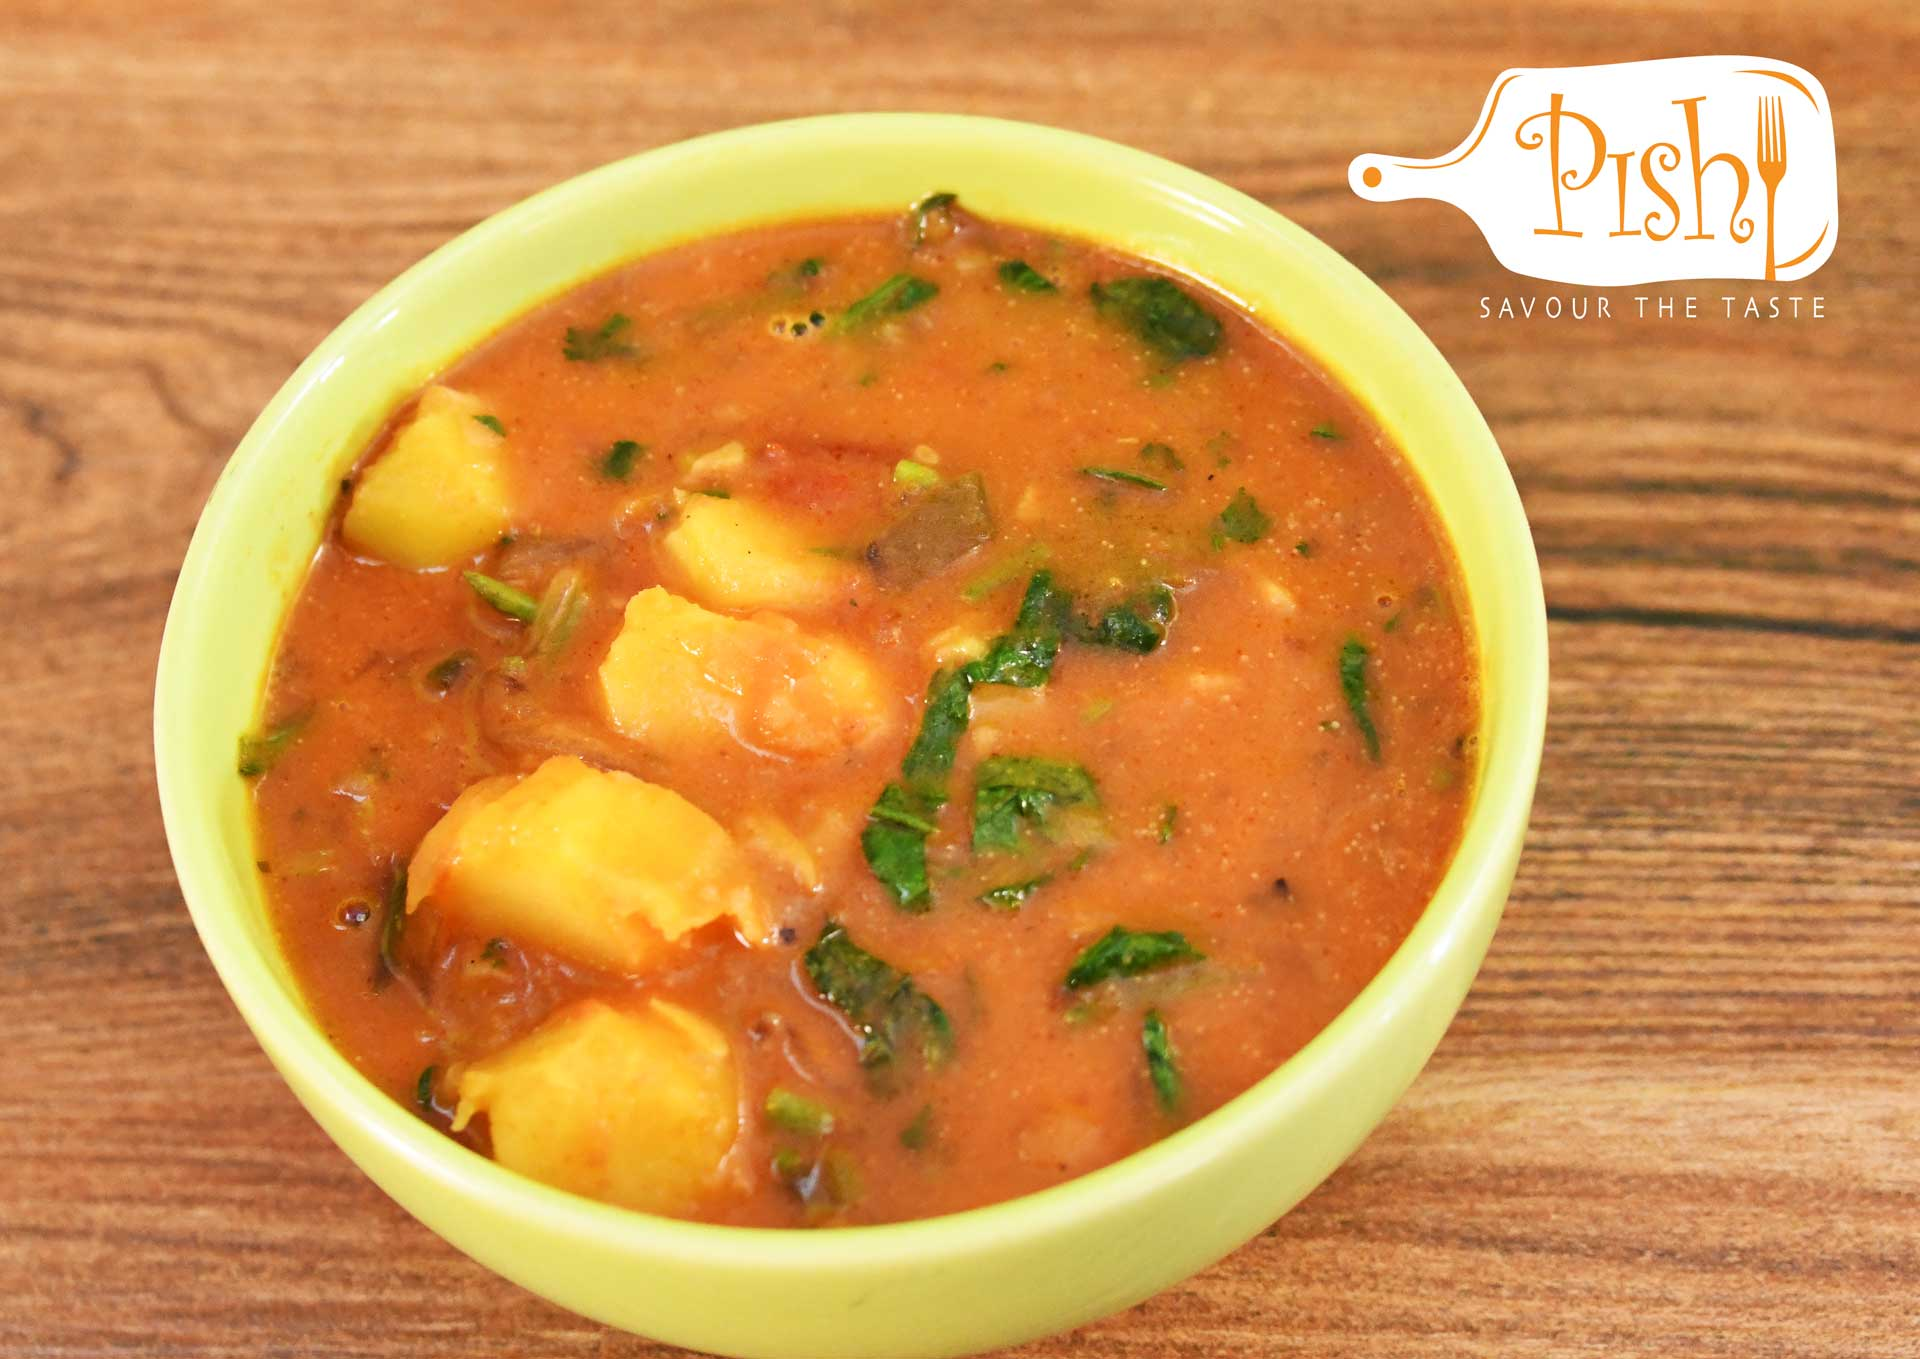 Potato and Spinach Stew